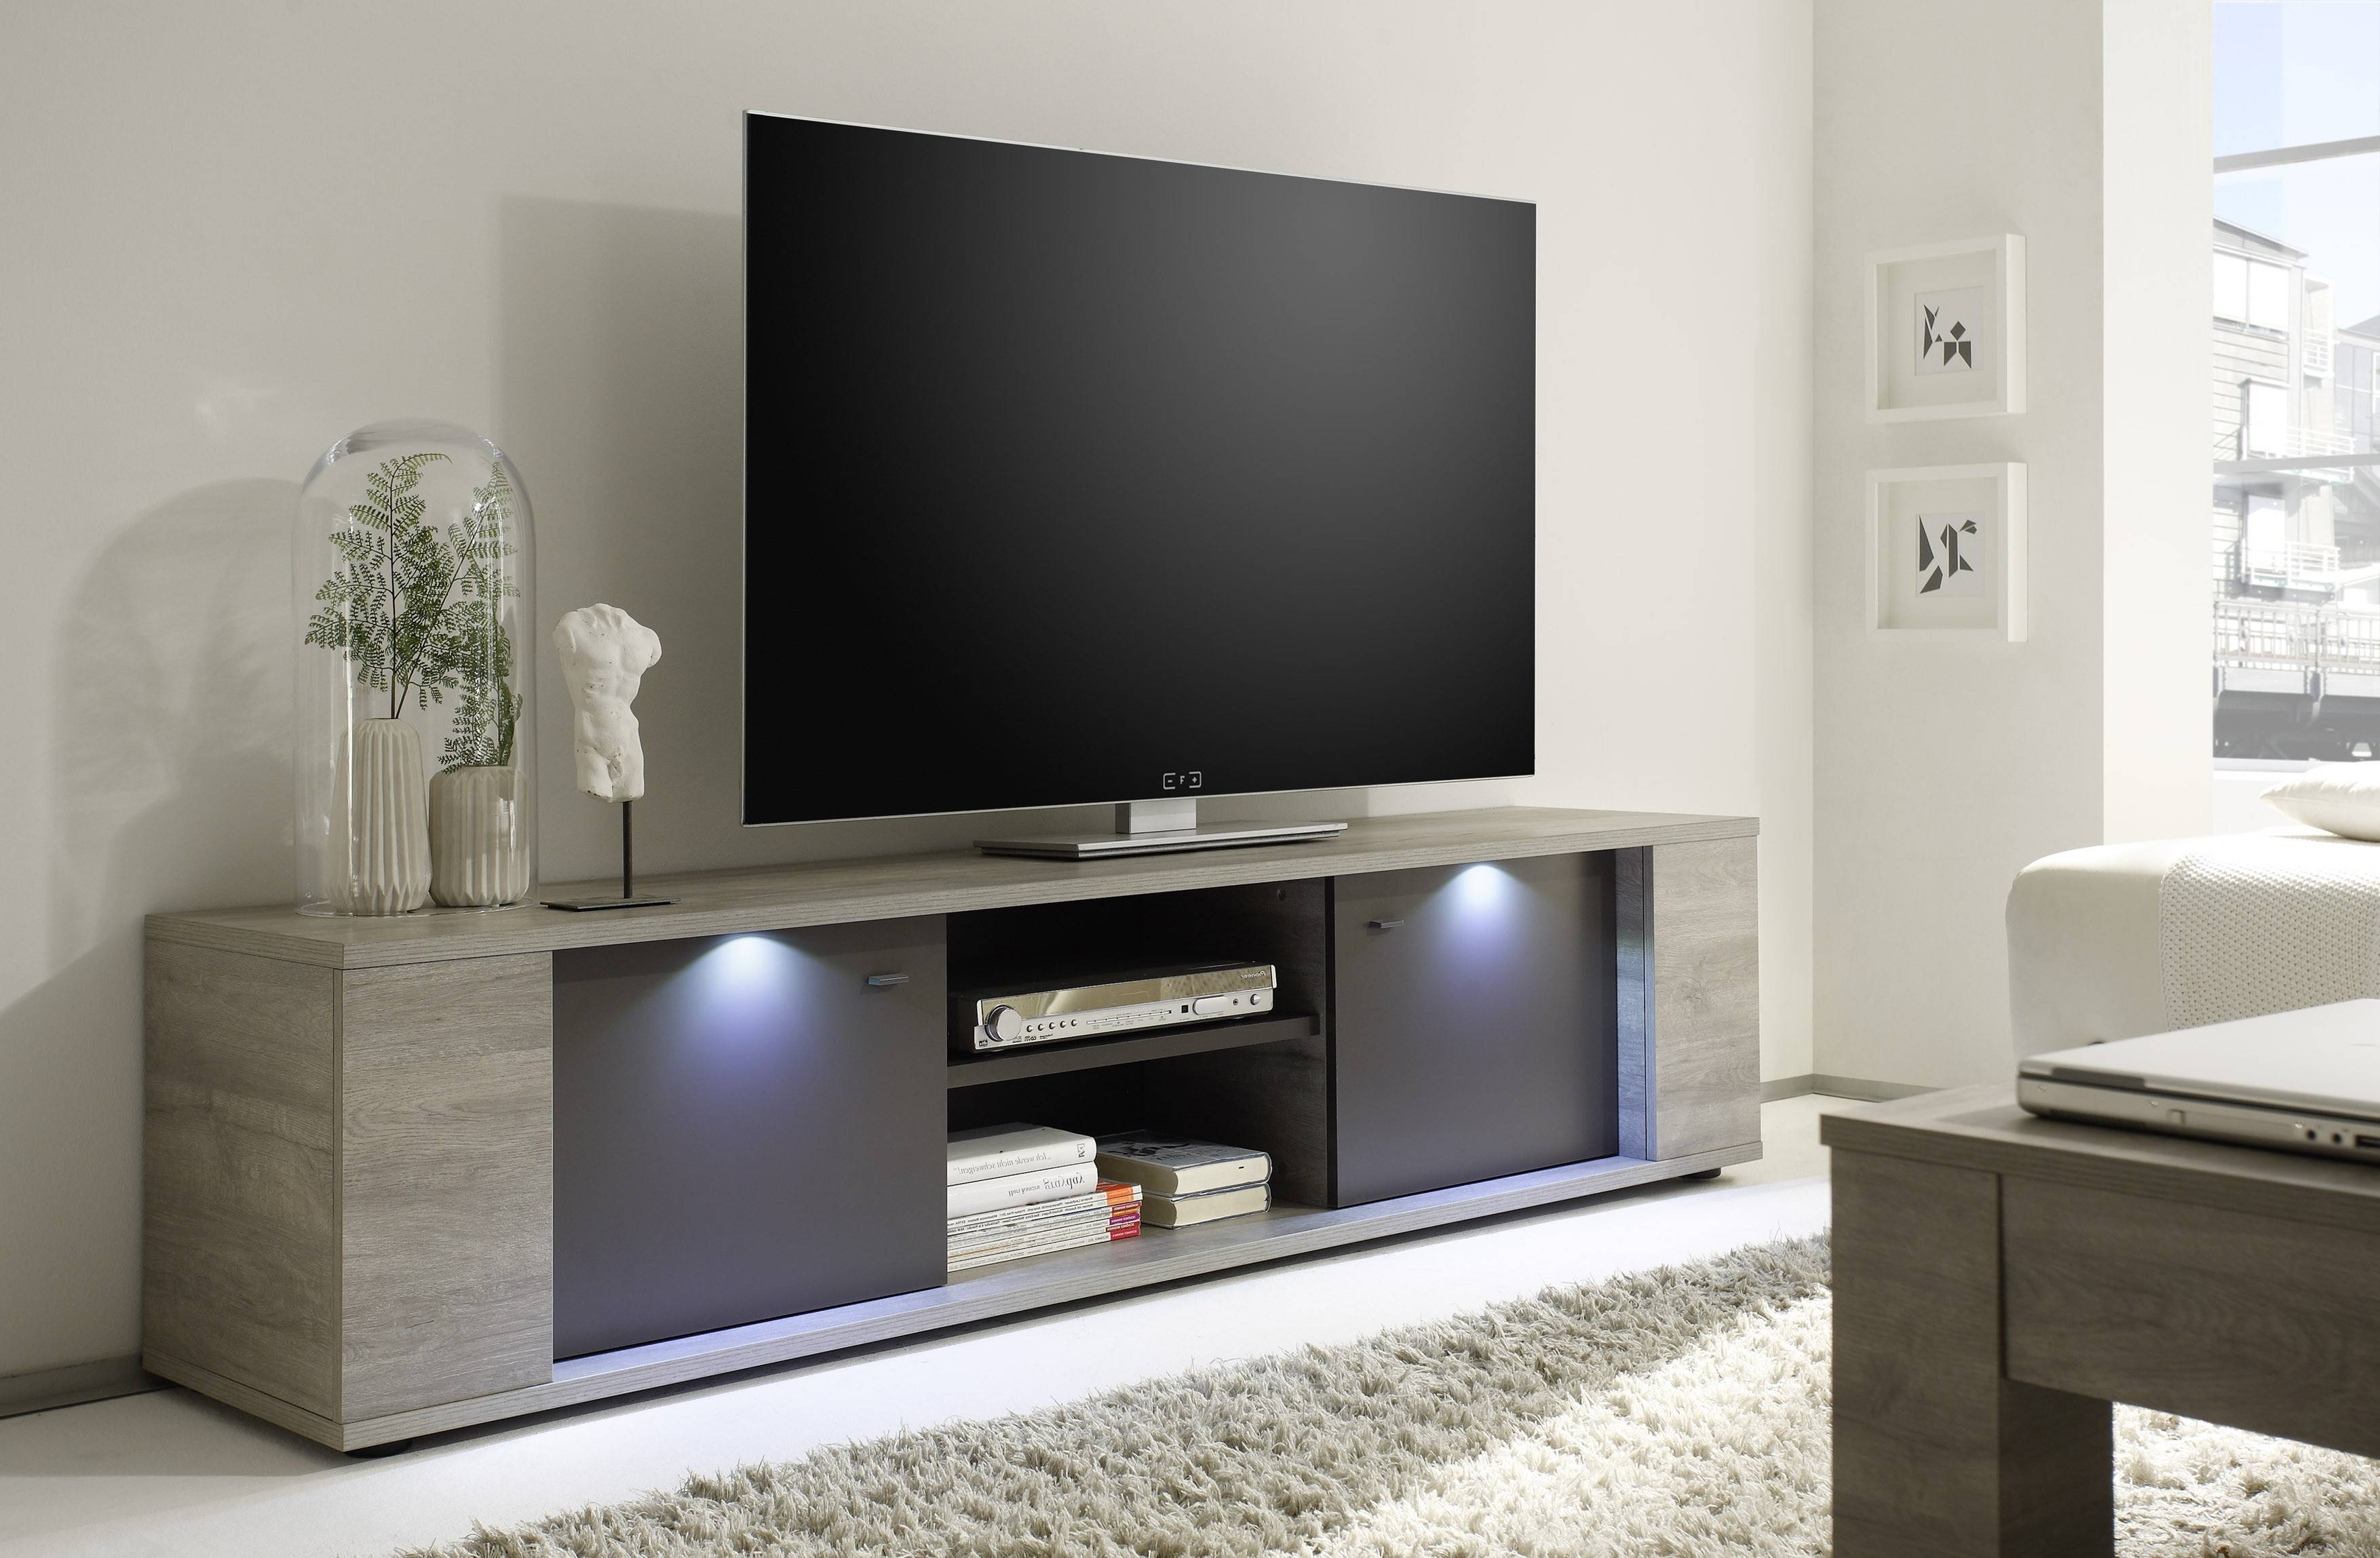 Sidney Big Tv Stand Buy Online At Best Price - Sohomod with Big Tv Stands Furniture (Image 9 of 15)